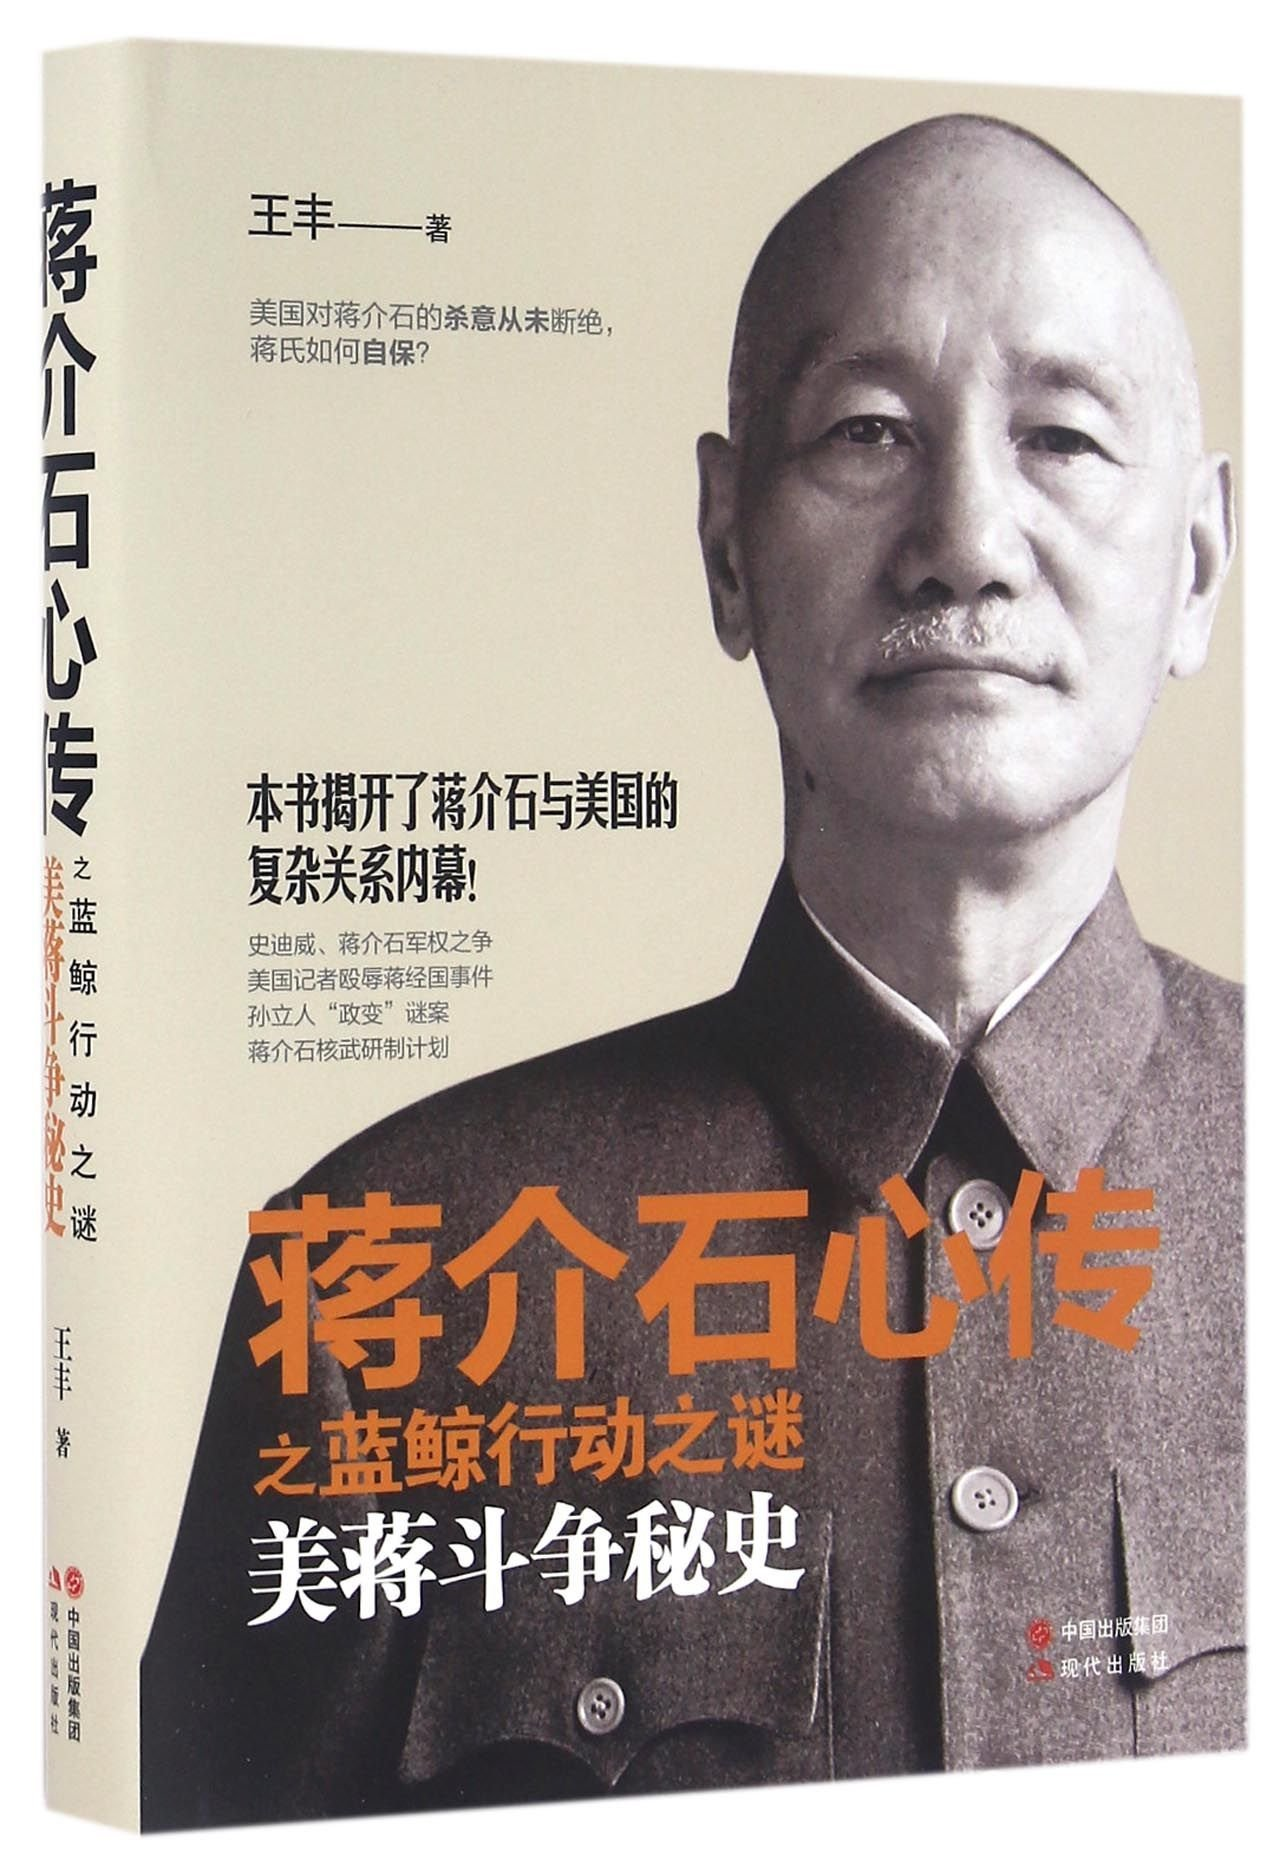 Download Chiang Kai-shek: The Secret of the Blue Whale Action (Hardcover) (Chinese Edition) PDF